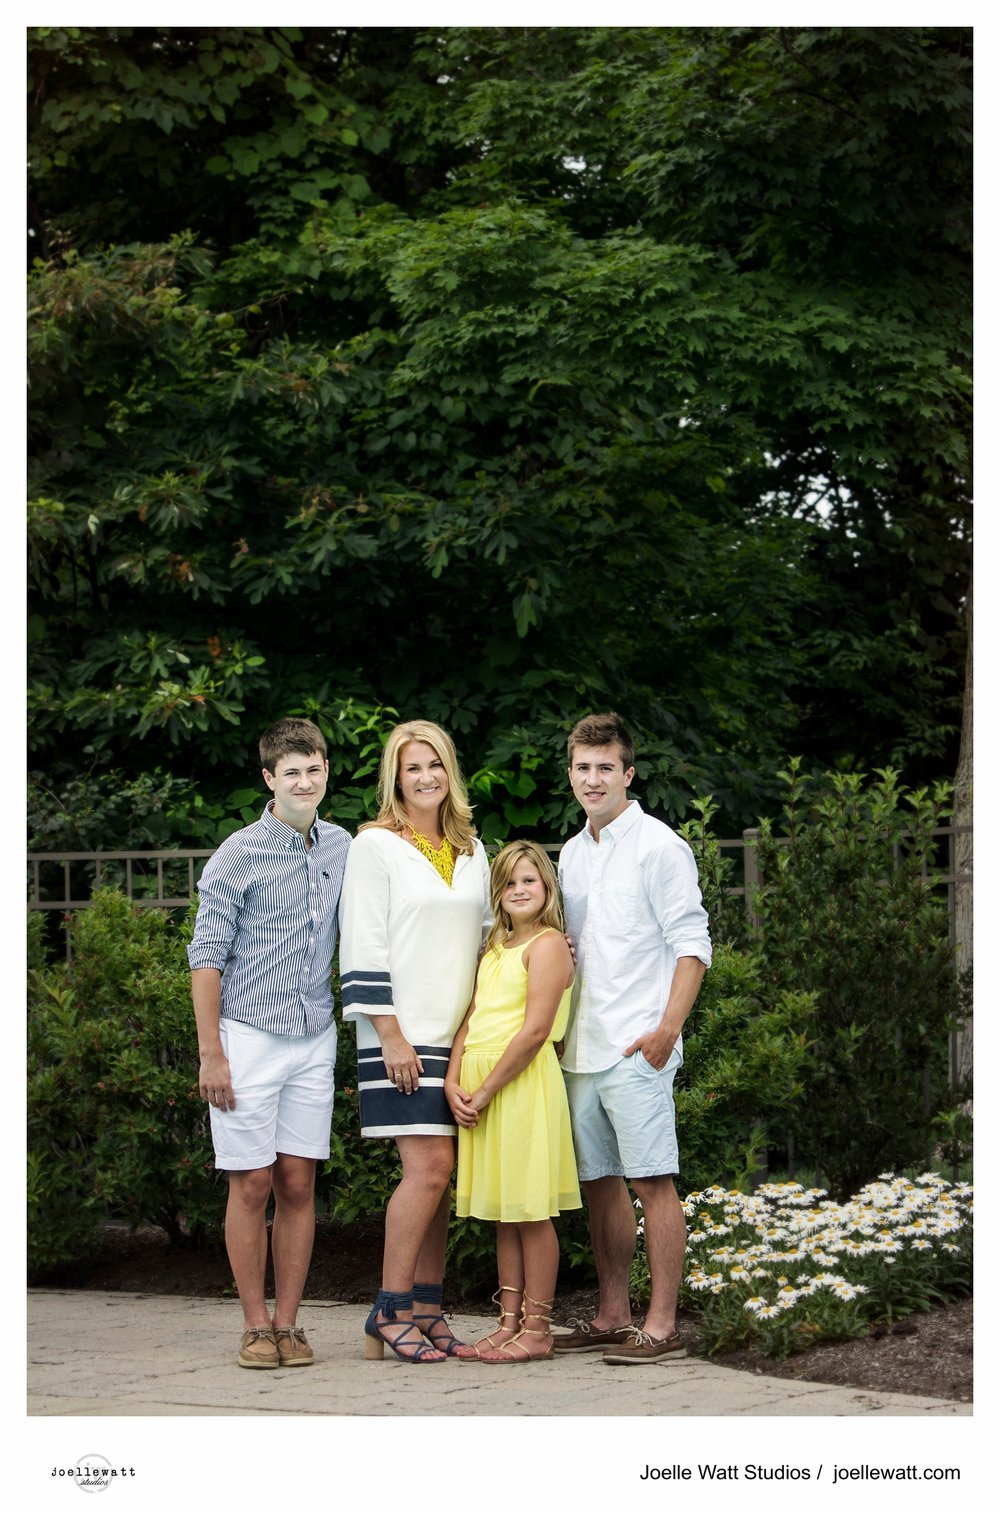 peterson family 7.jpg